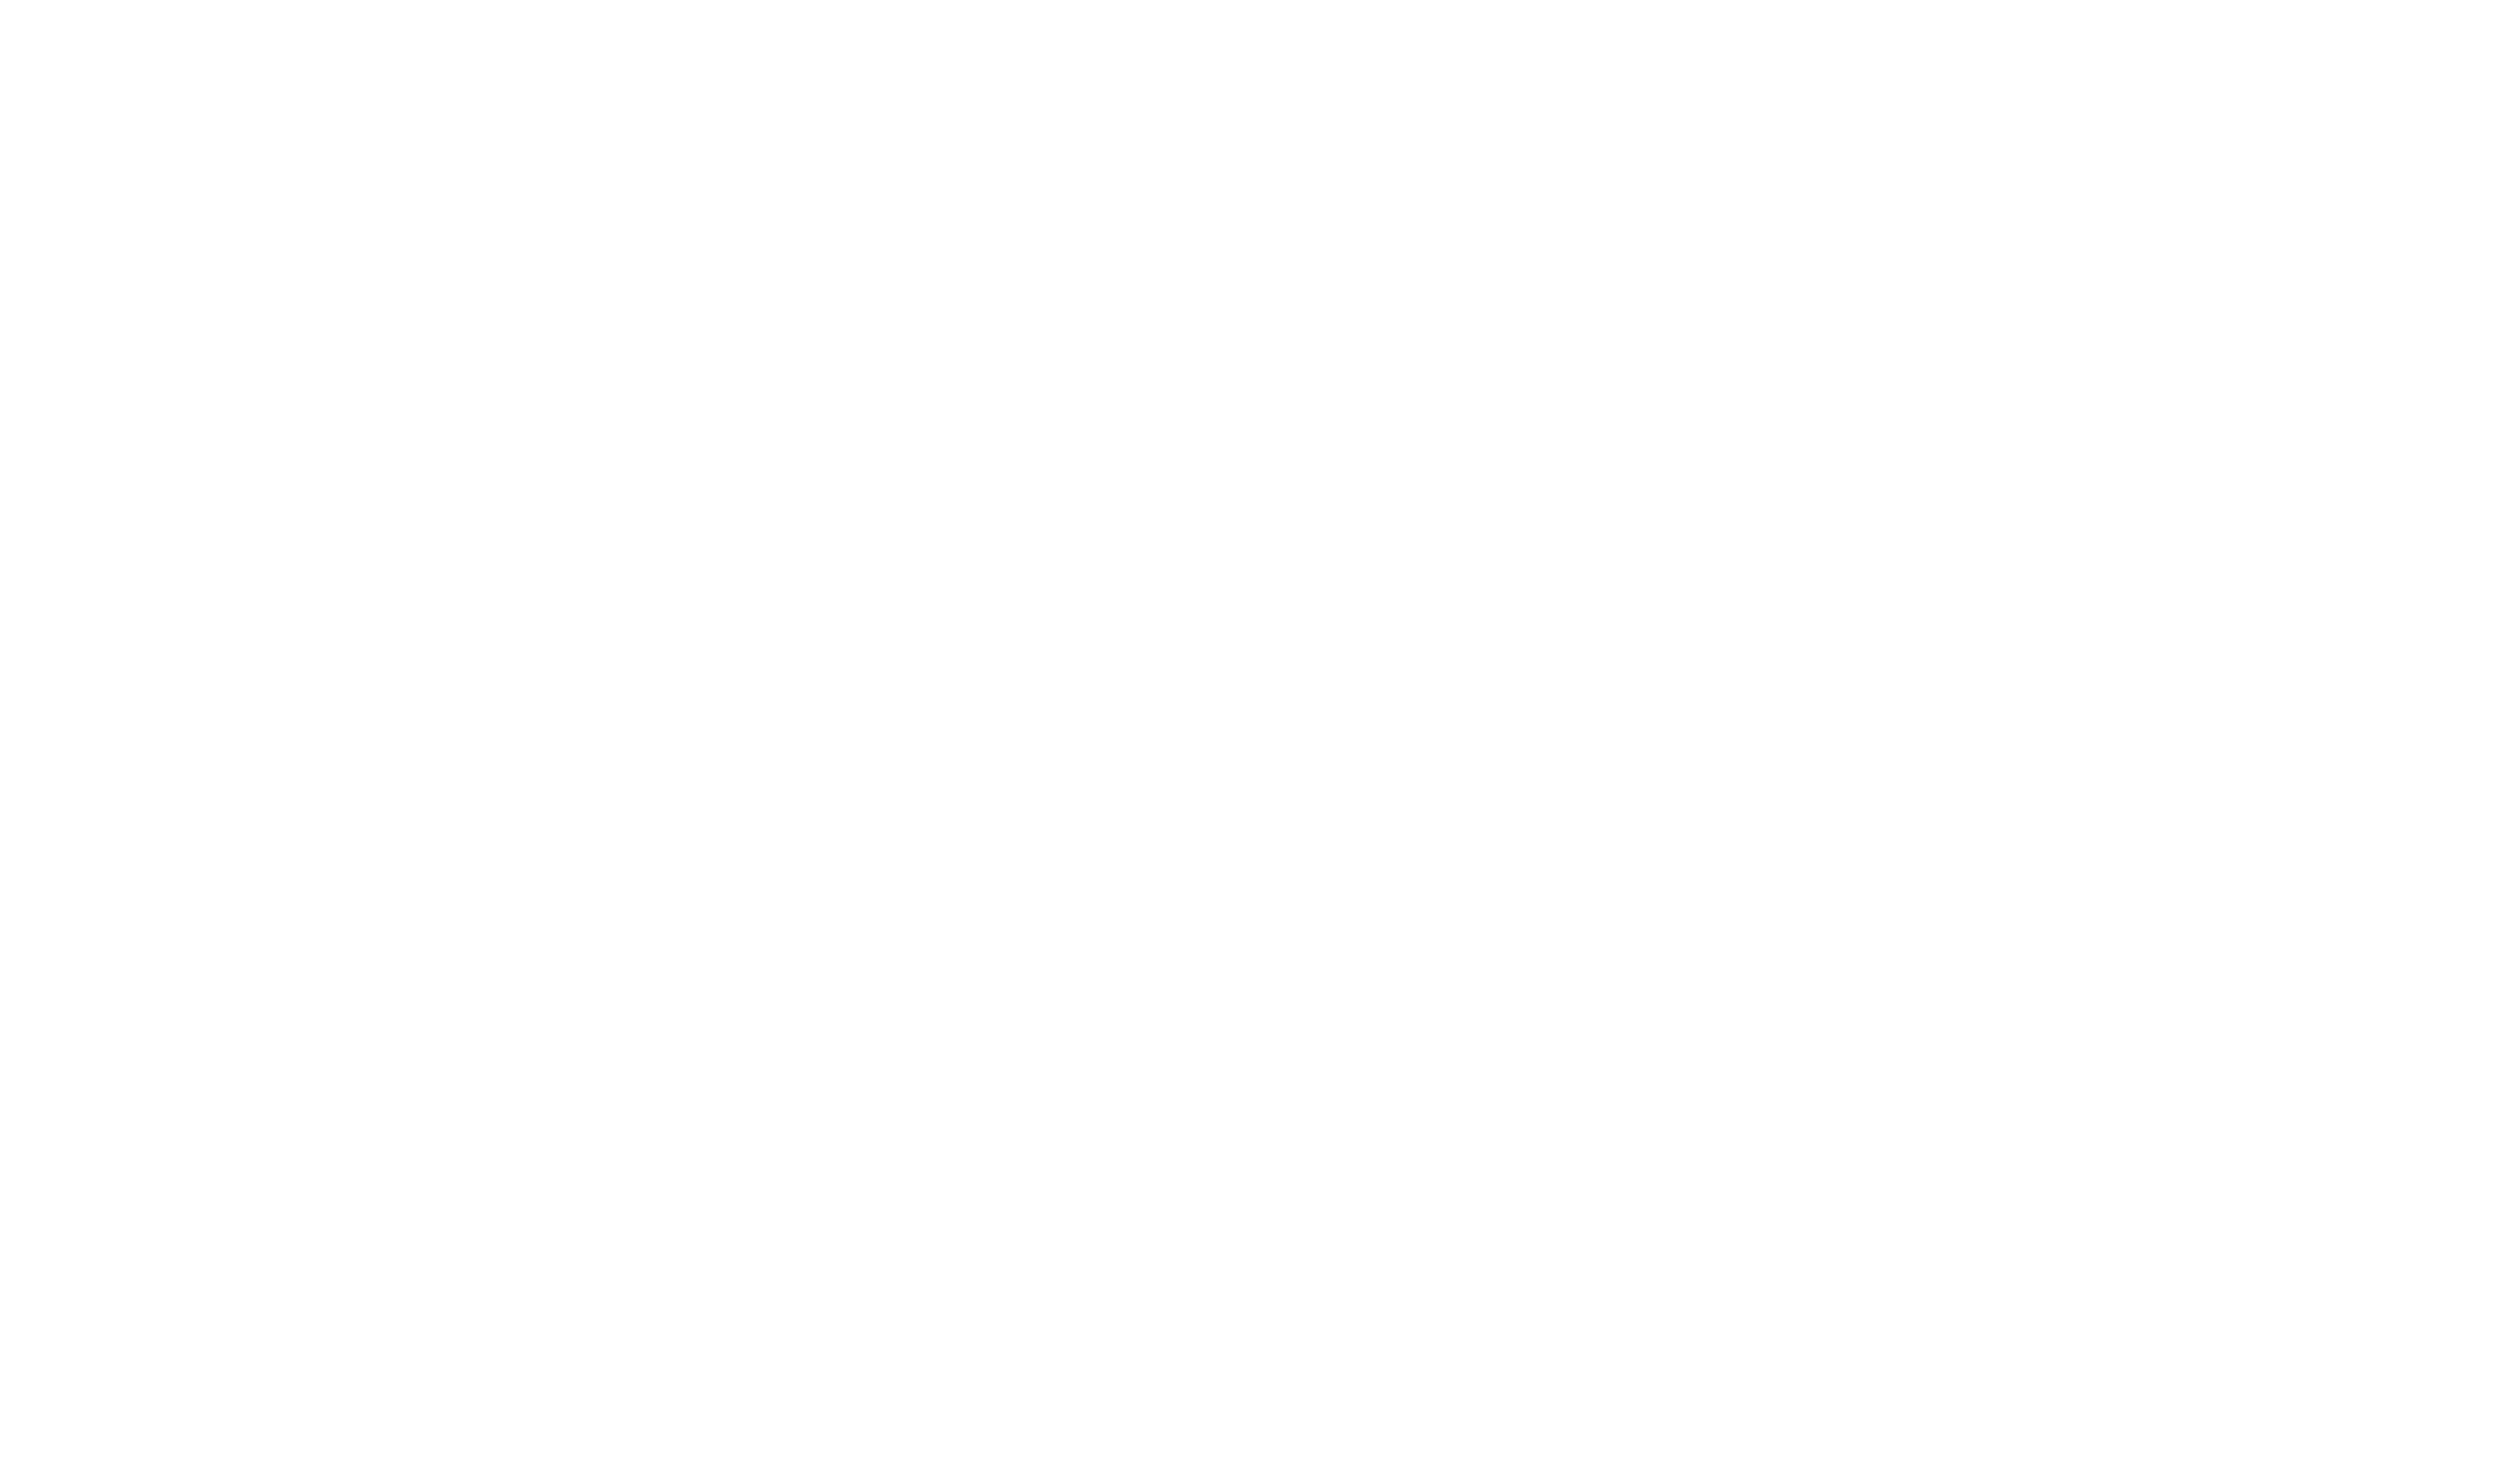 CottageSpot